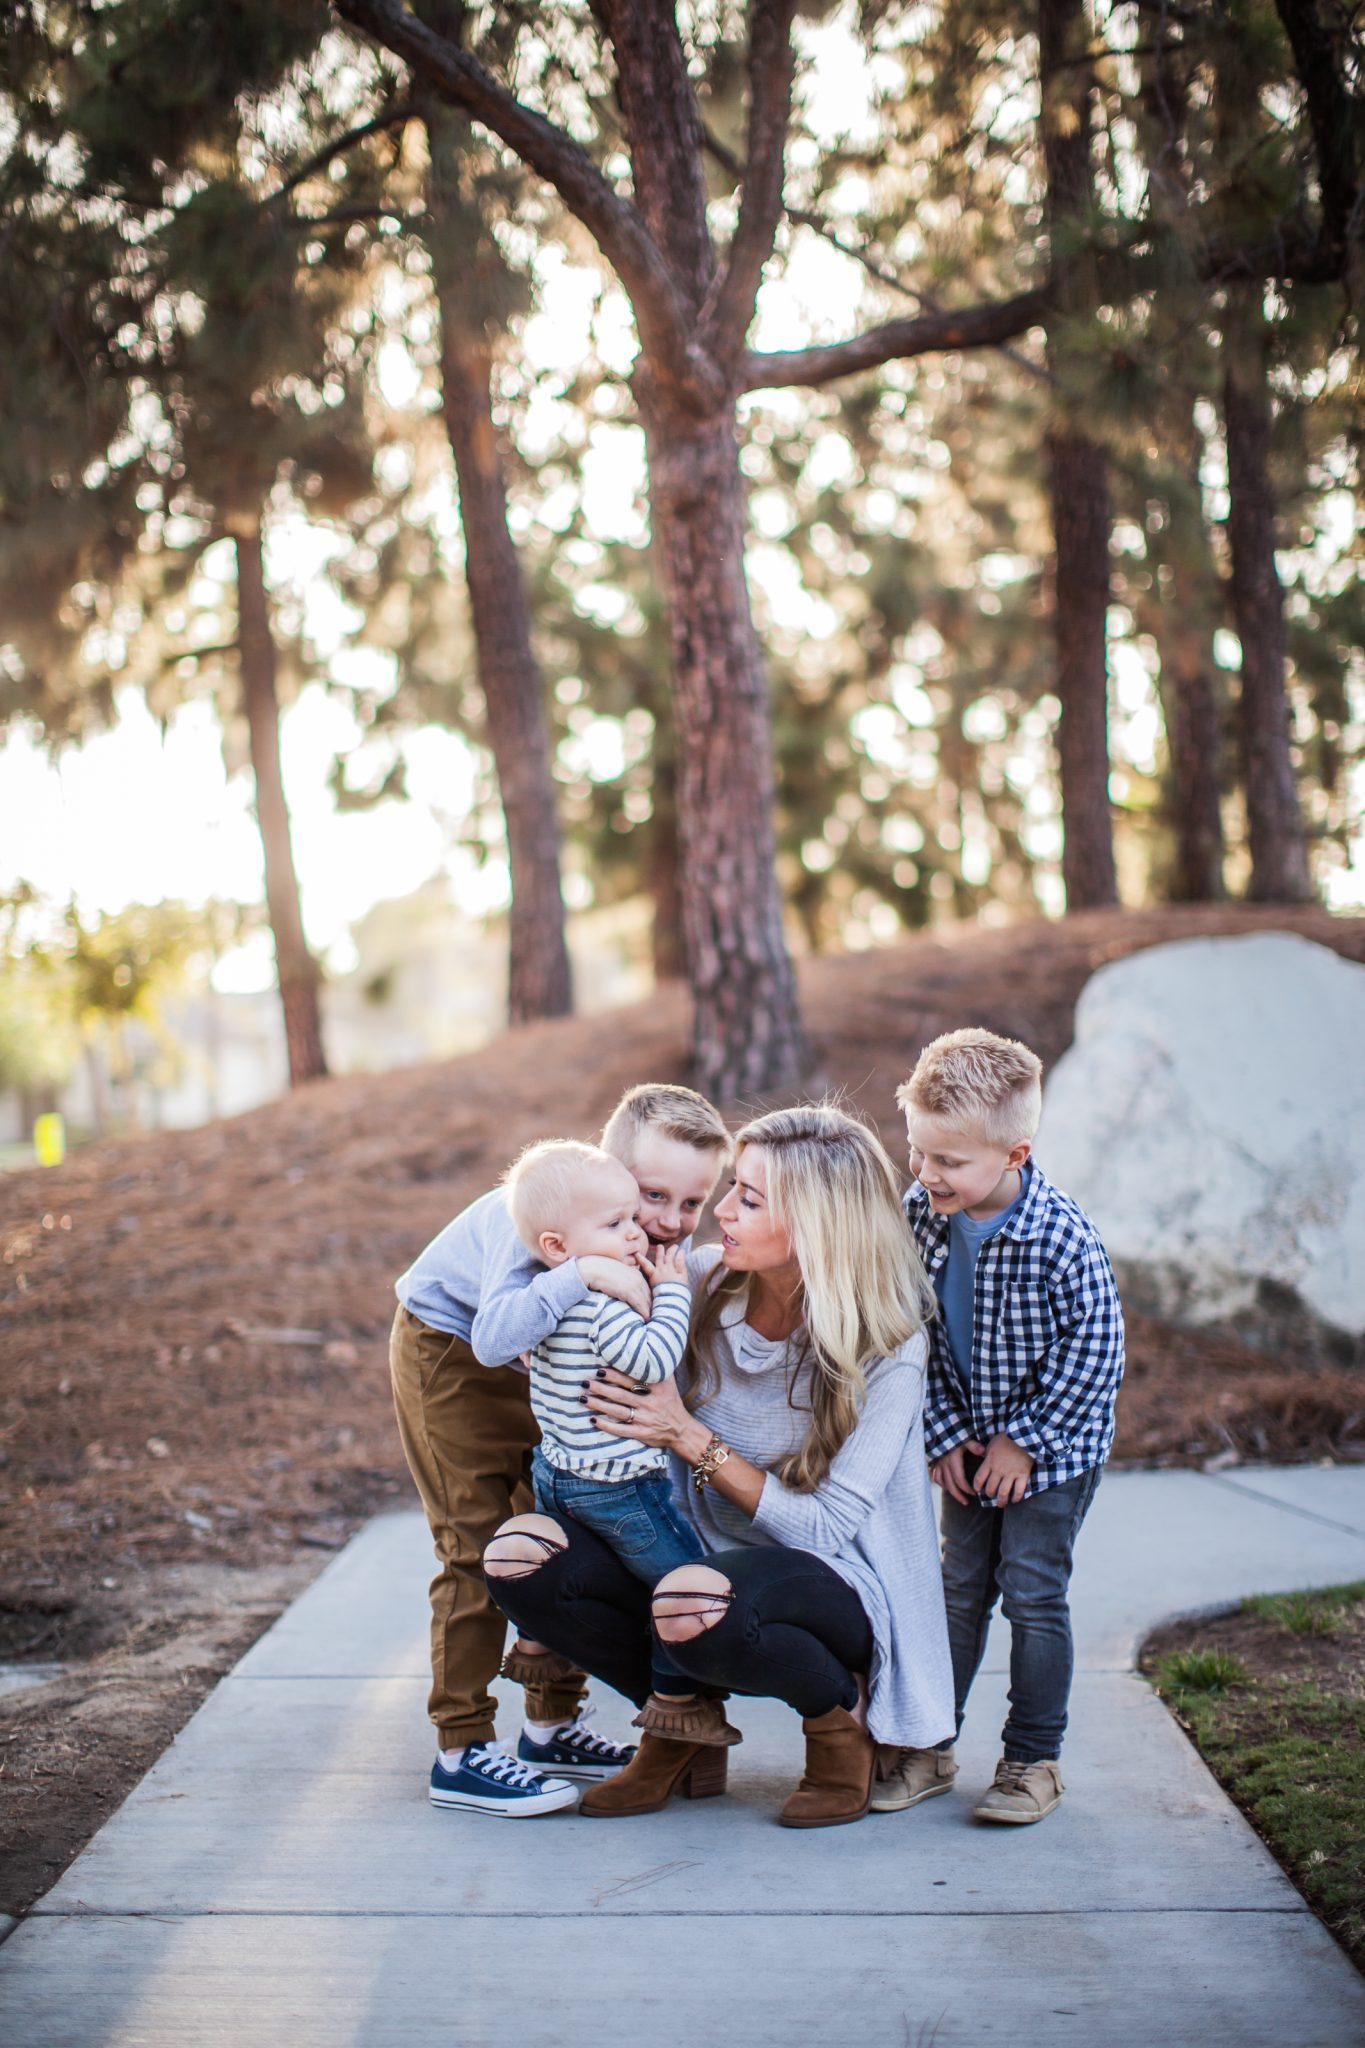 A FEW SIMPLE TRICKS FOR TAKING FAMILY PICTURES WITH KIDS